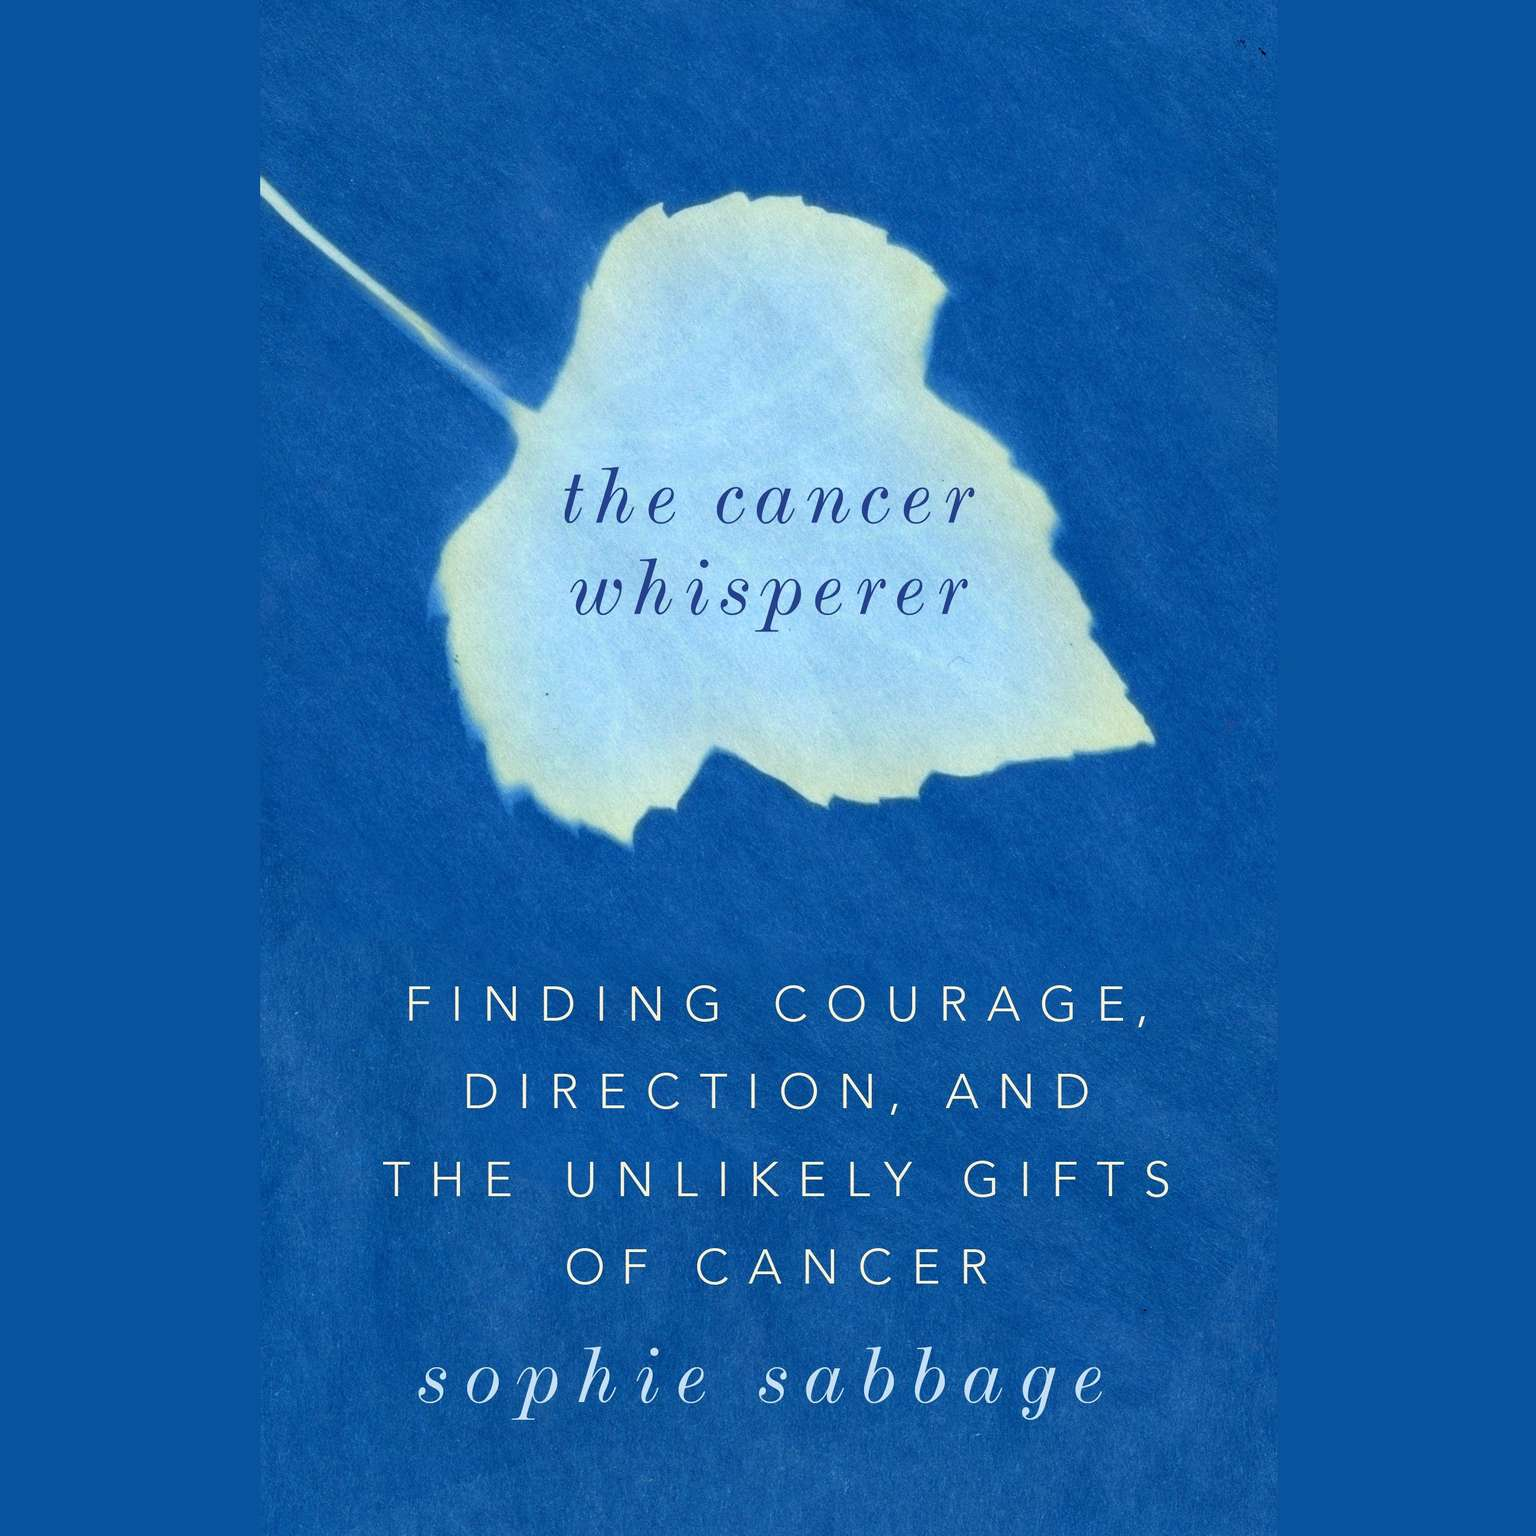 Printable The Cancer Whisperer: Finding Courage, Direction, and The Unlikely Gifts of Cancer Audiobook Cover Art